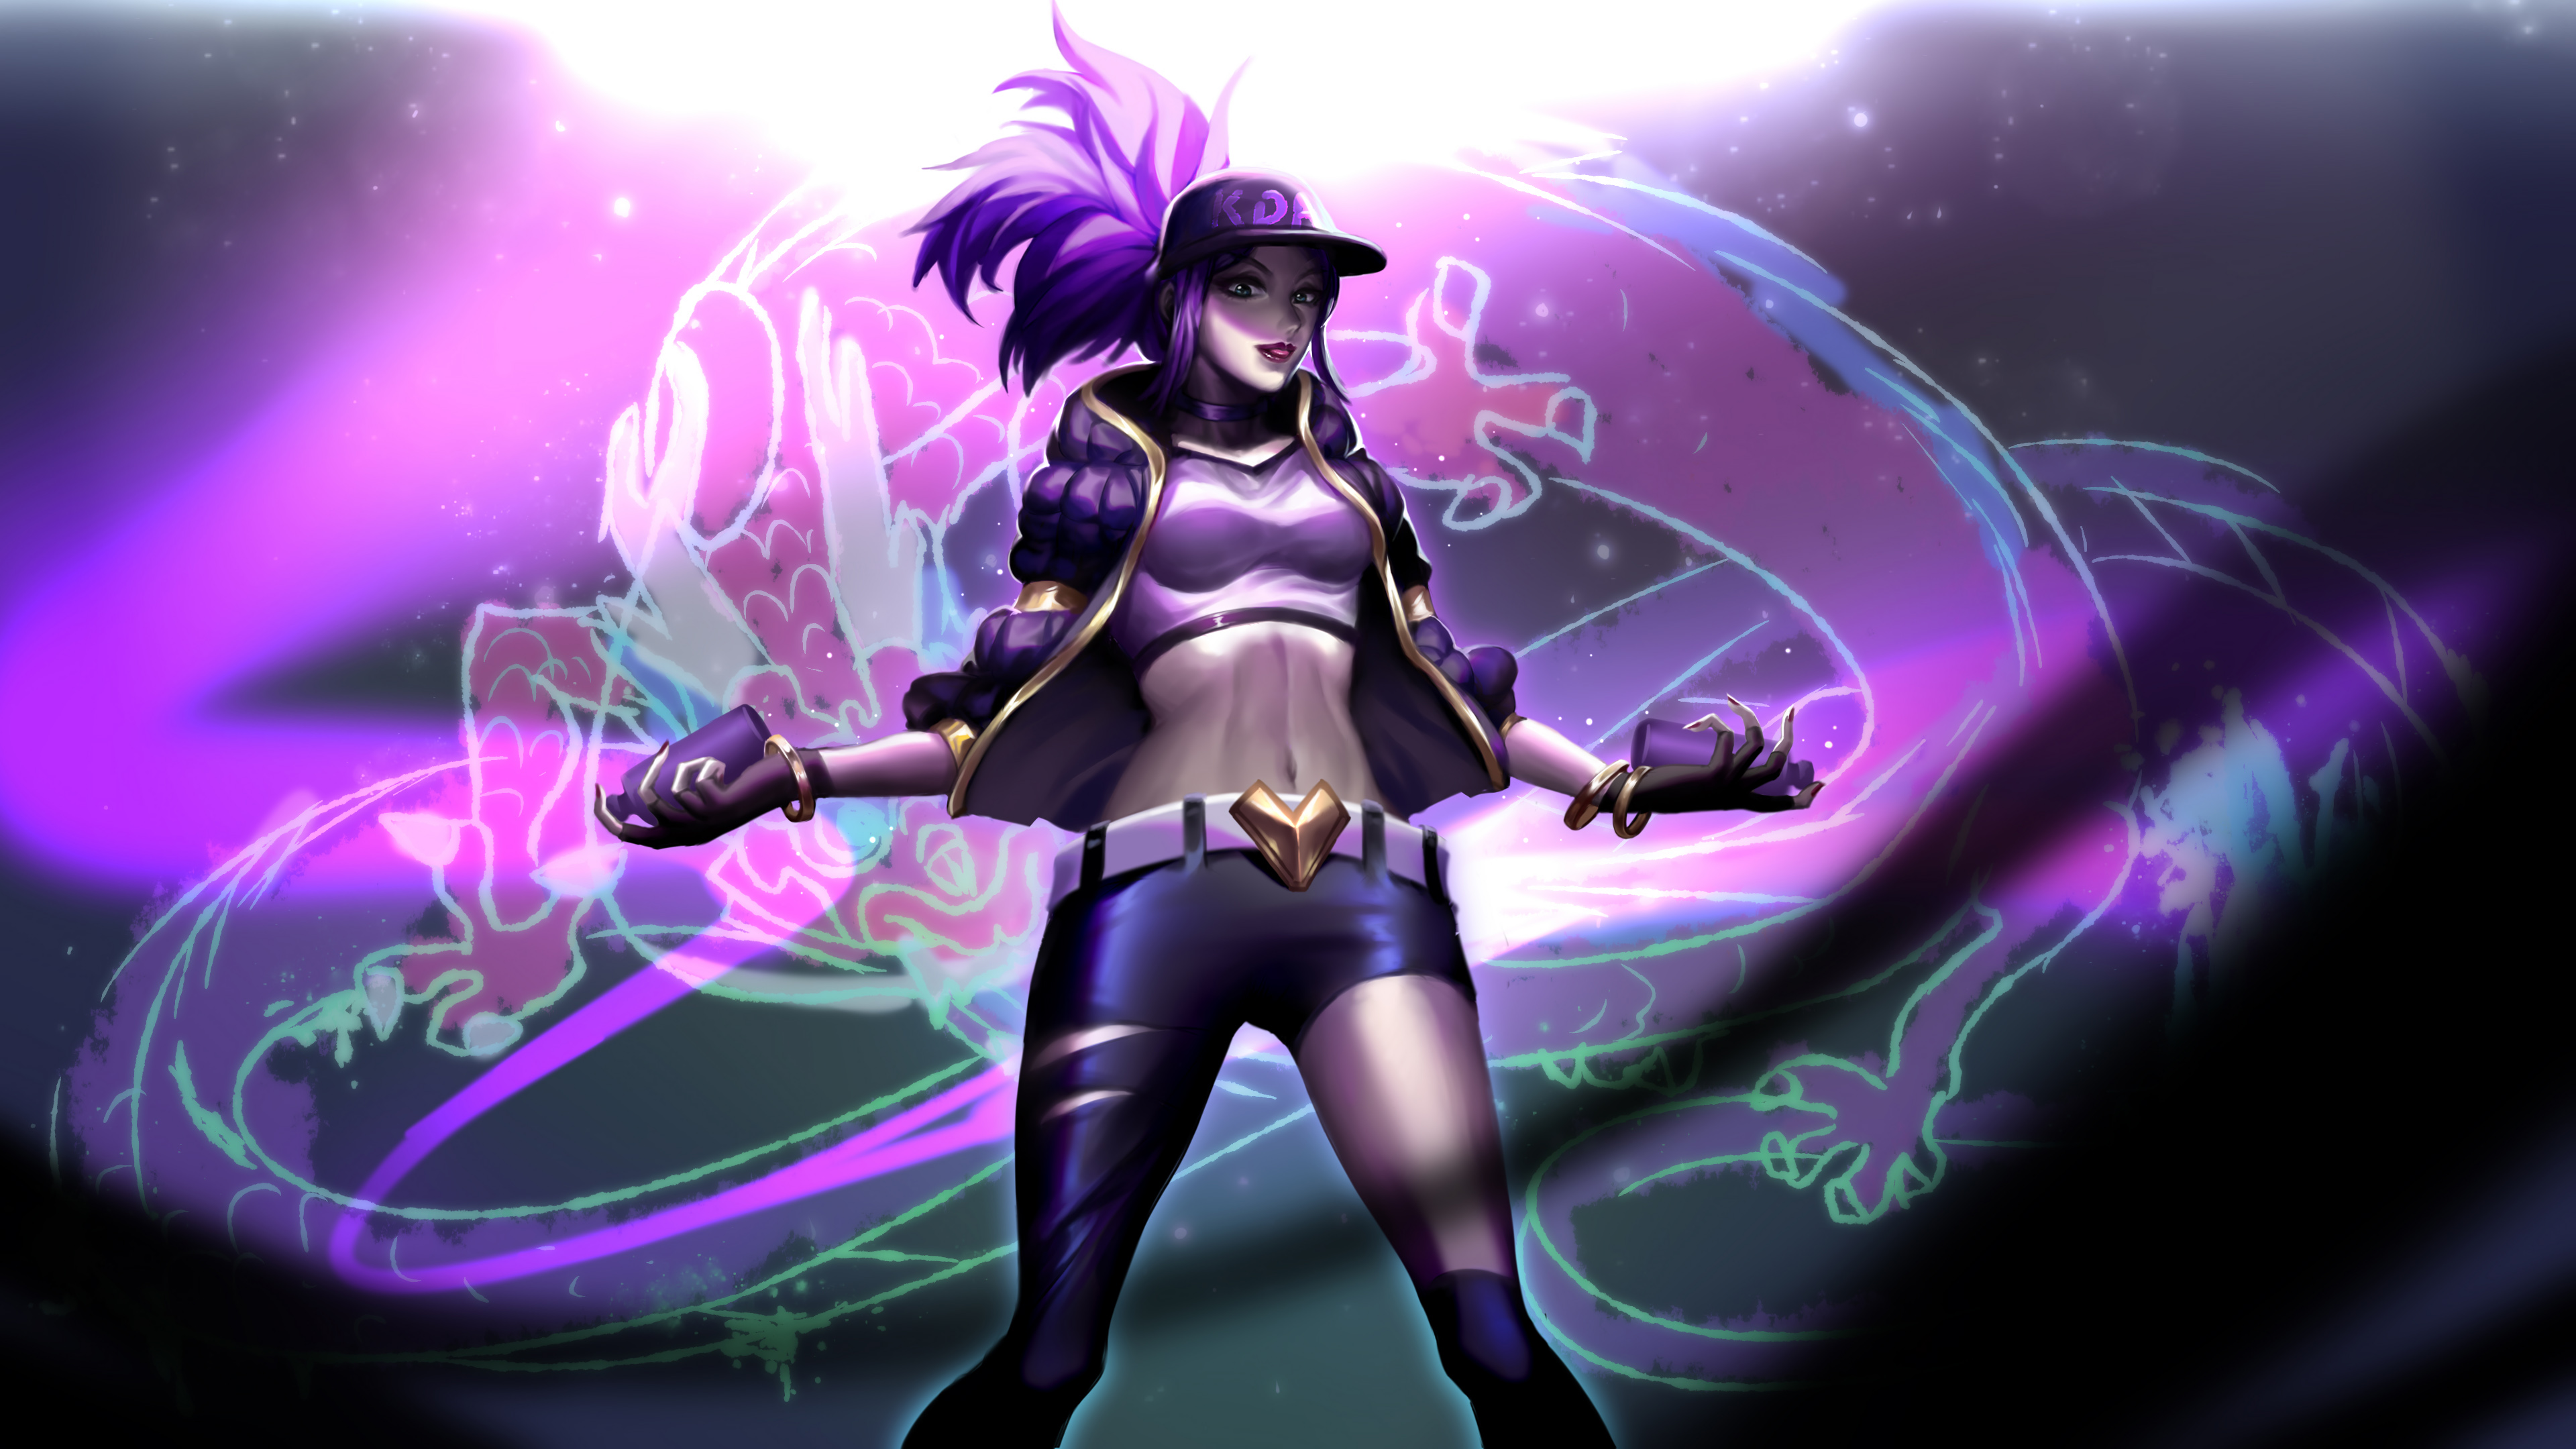 Kda Akali Hd Games 4k Wallpapers Images Backgrounds Photos And